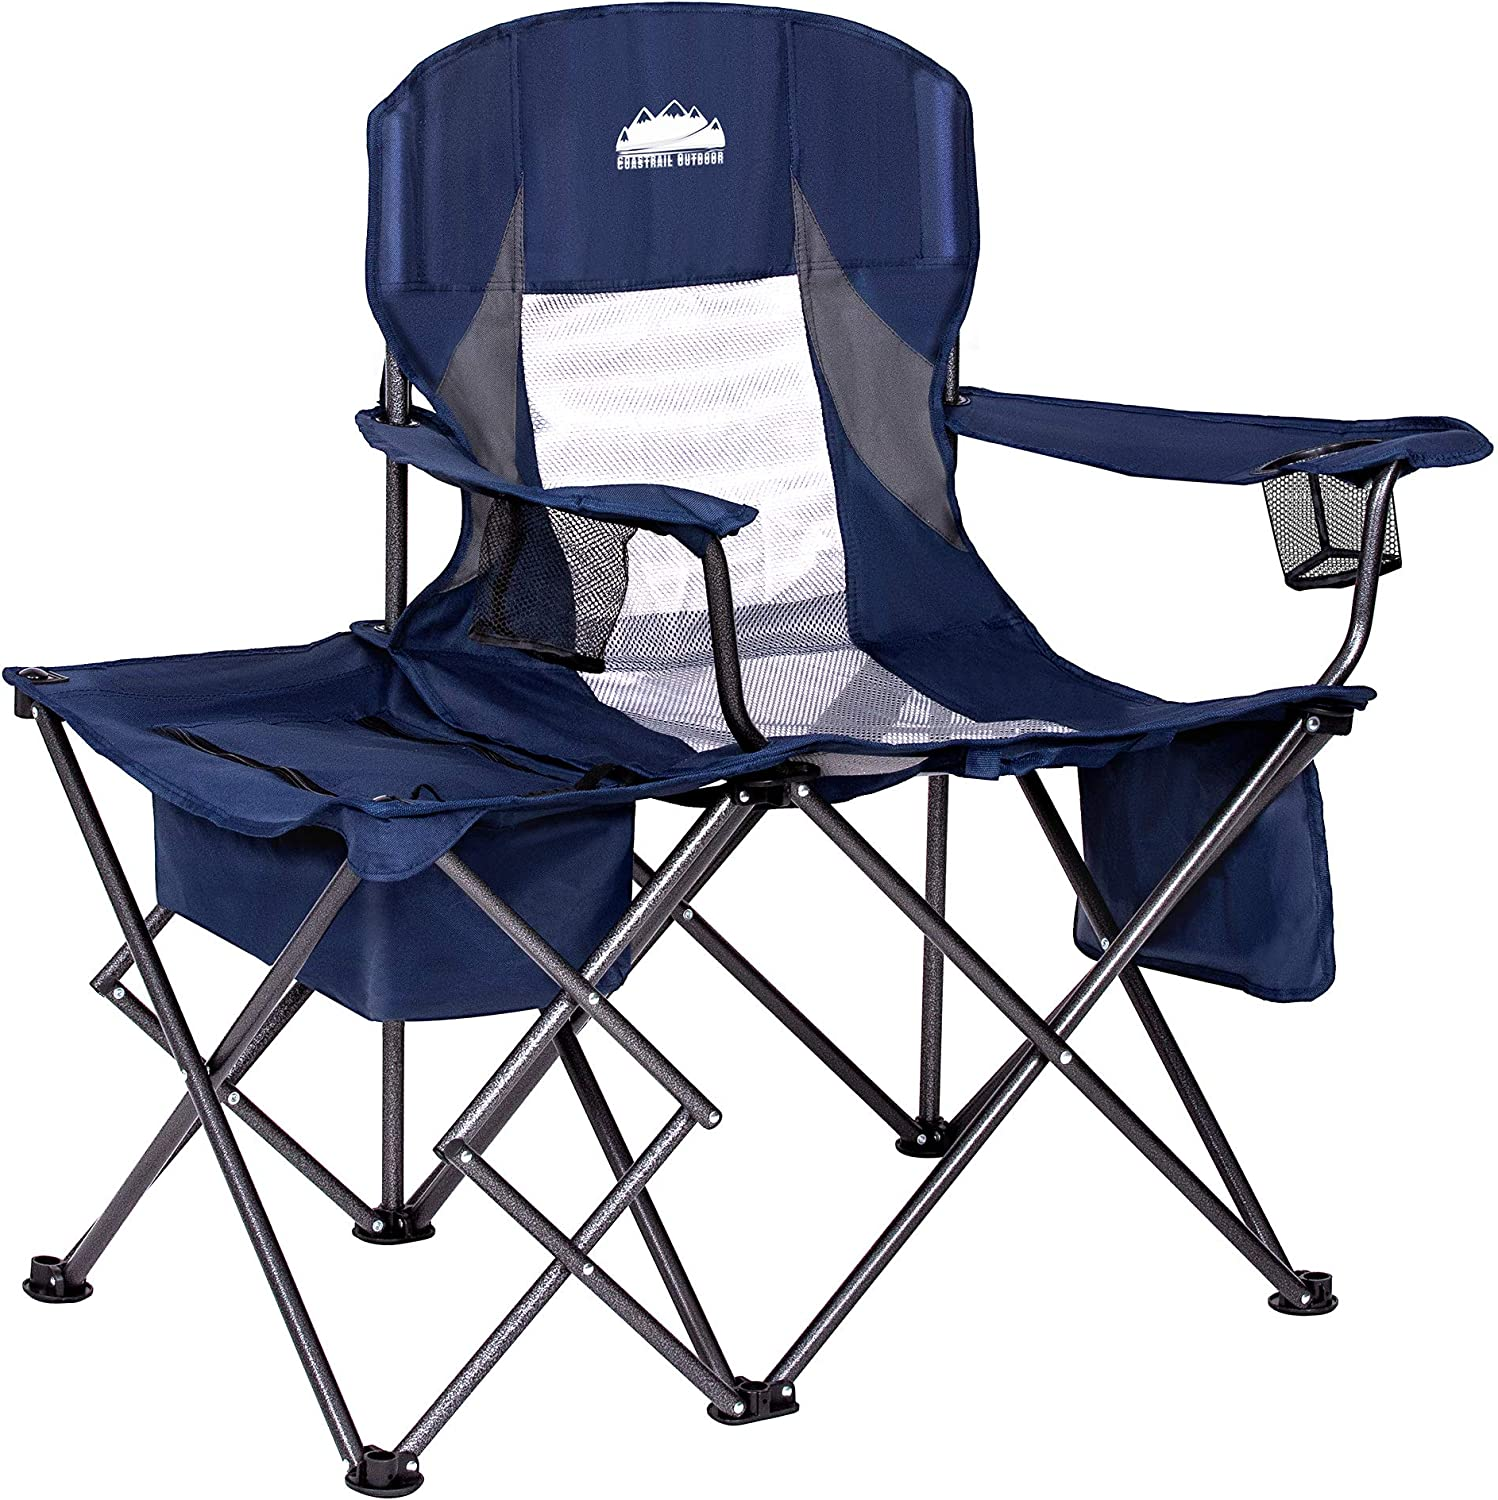 Outdoor Camping Folding Chair with Cup Holder Heavy Duty Large Portable Cooler